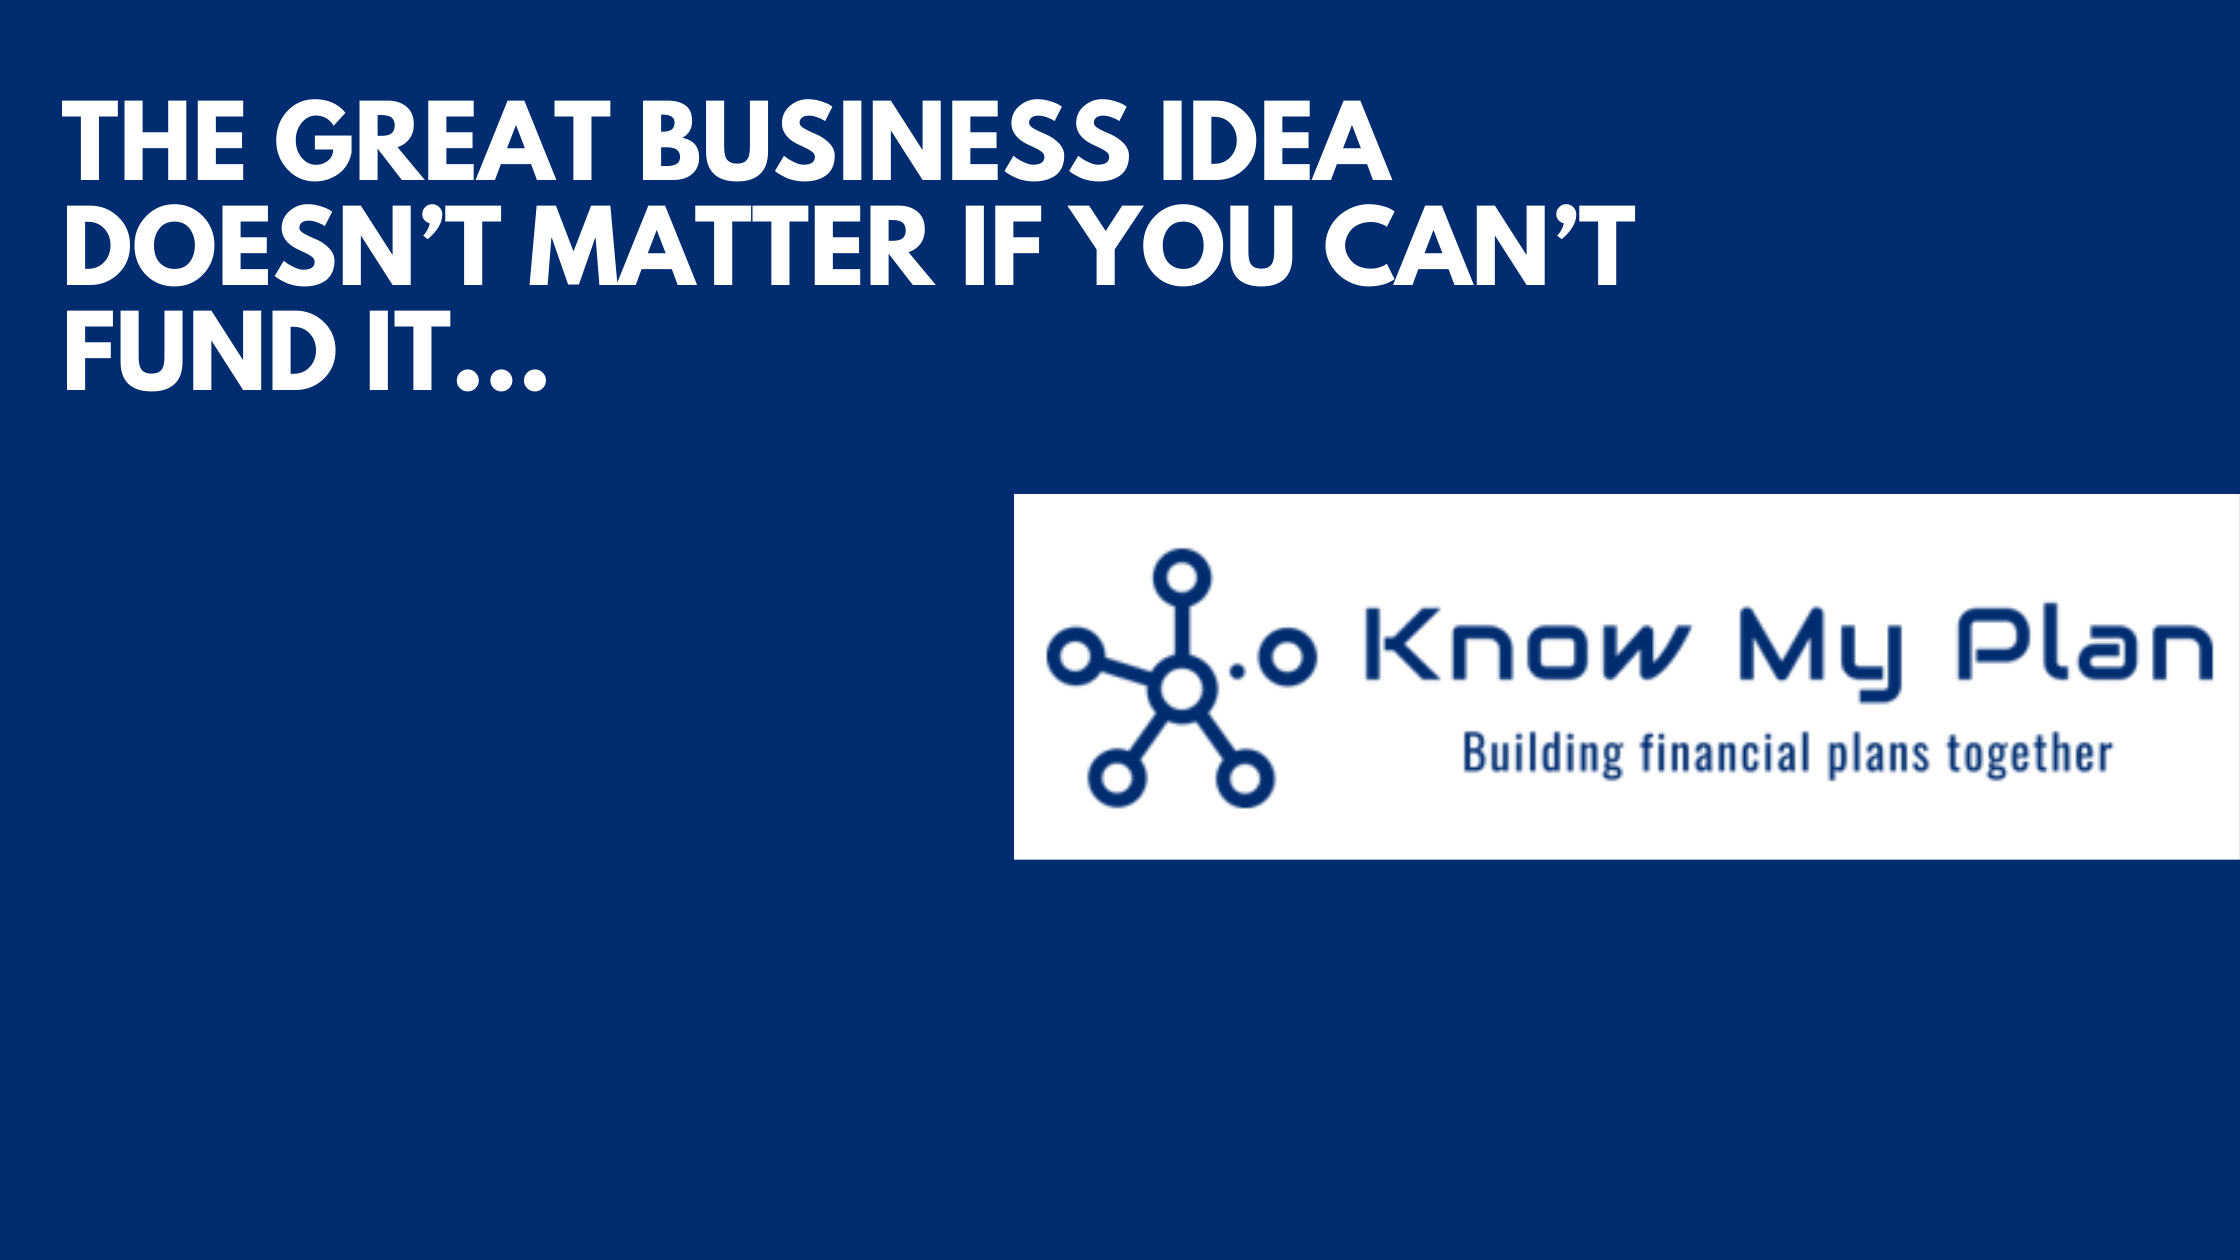 The Great Business Idea Doesn't Matter If You Can't Fund It... Thumbnail